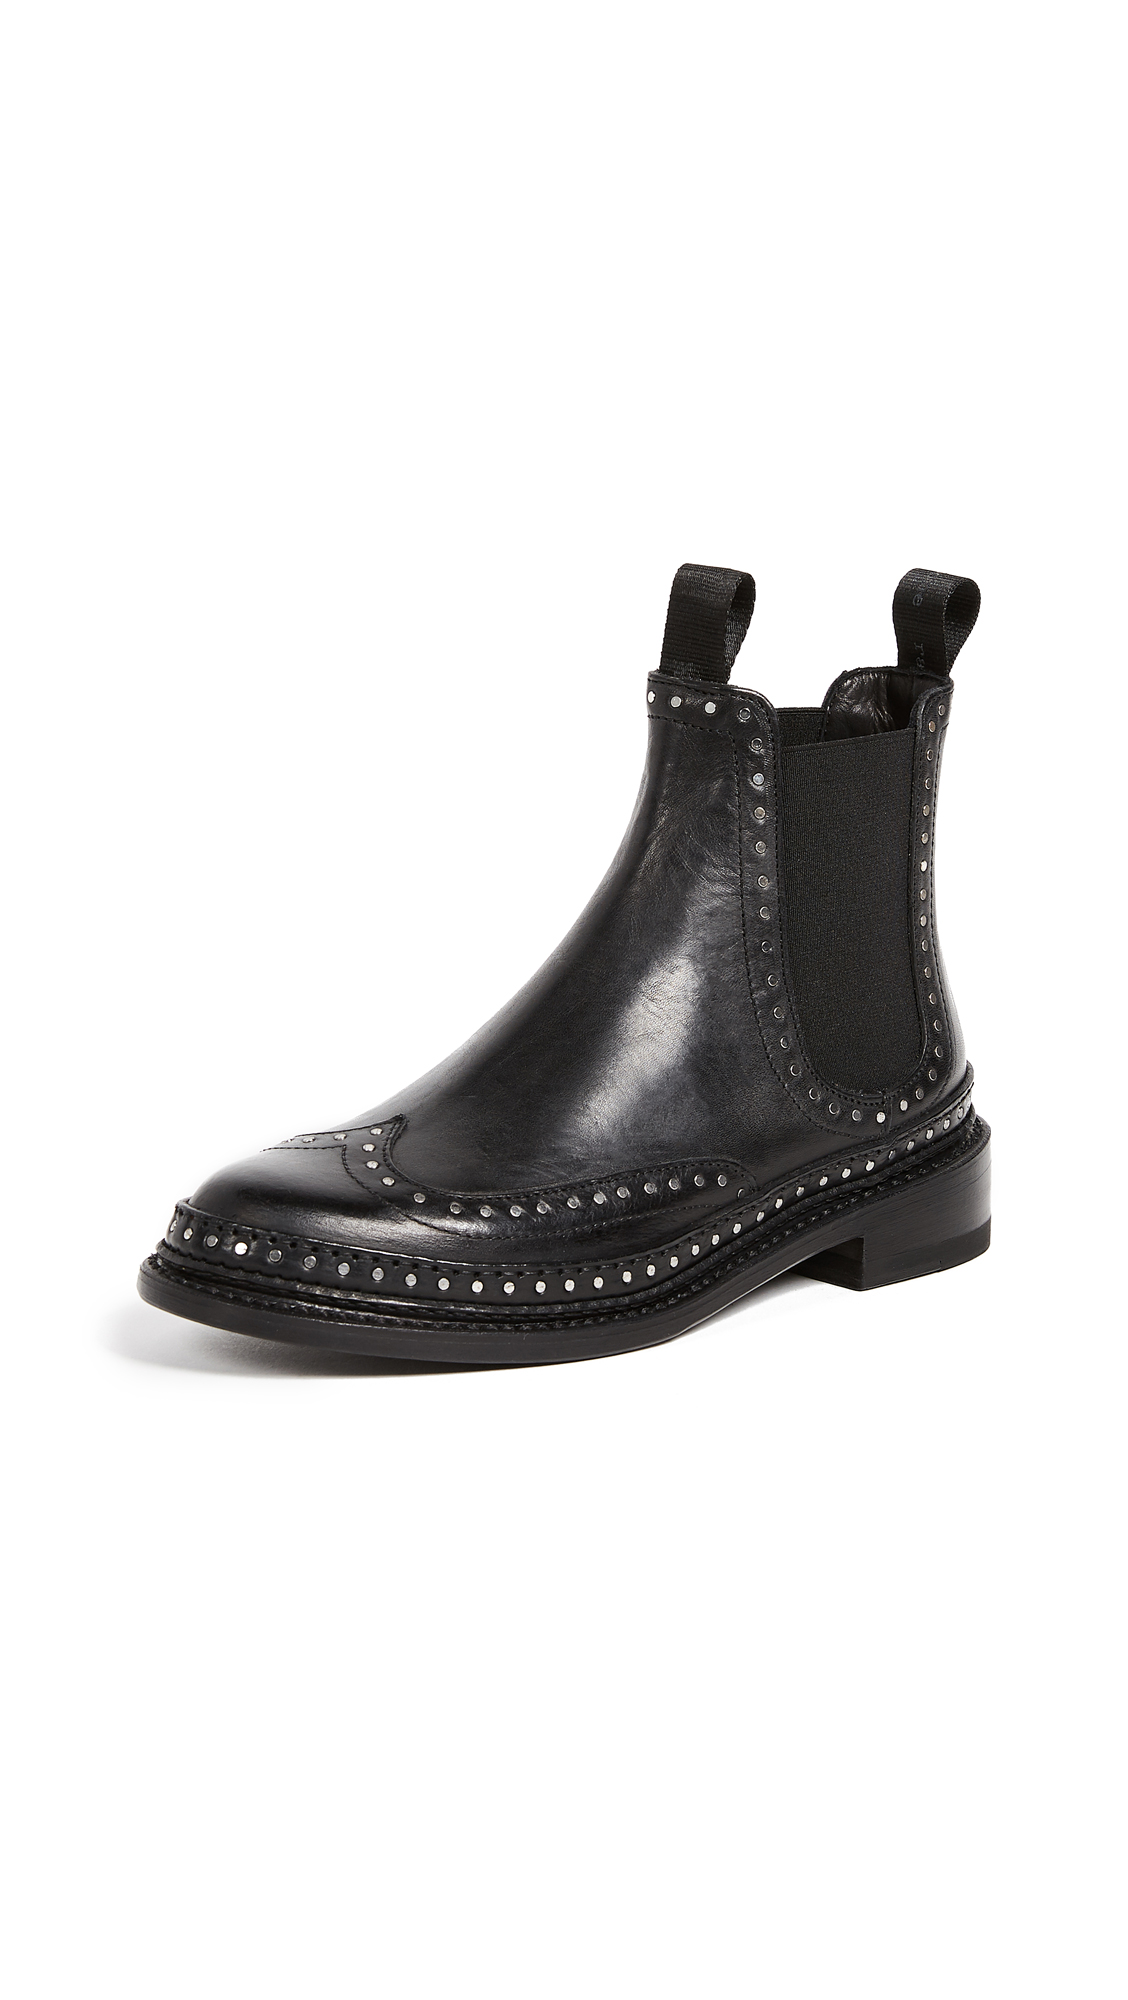 Rag & Bone Benson Booties - Black